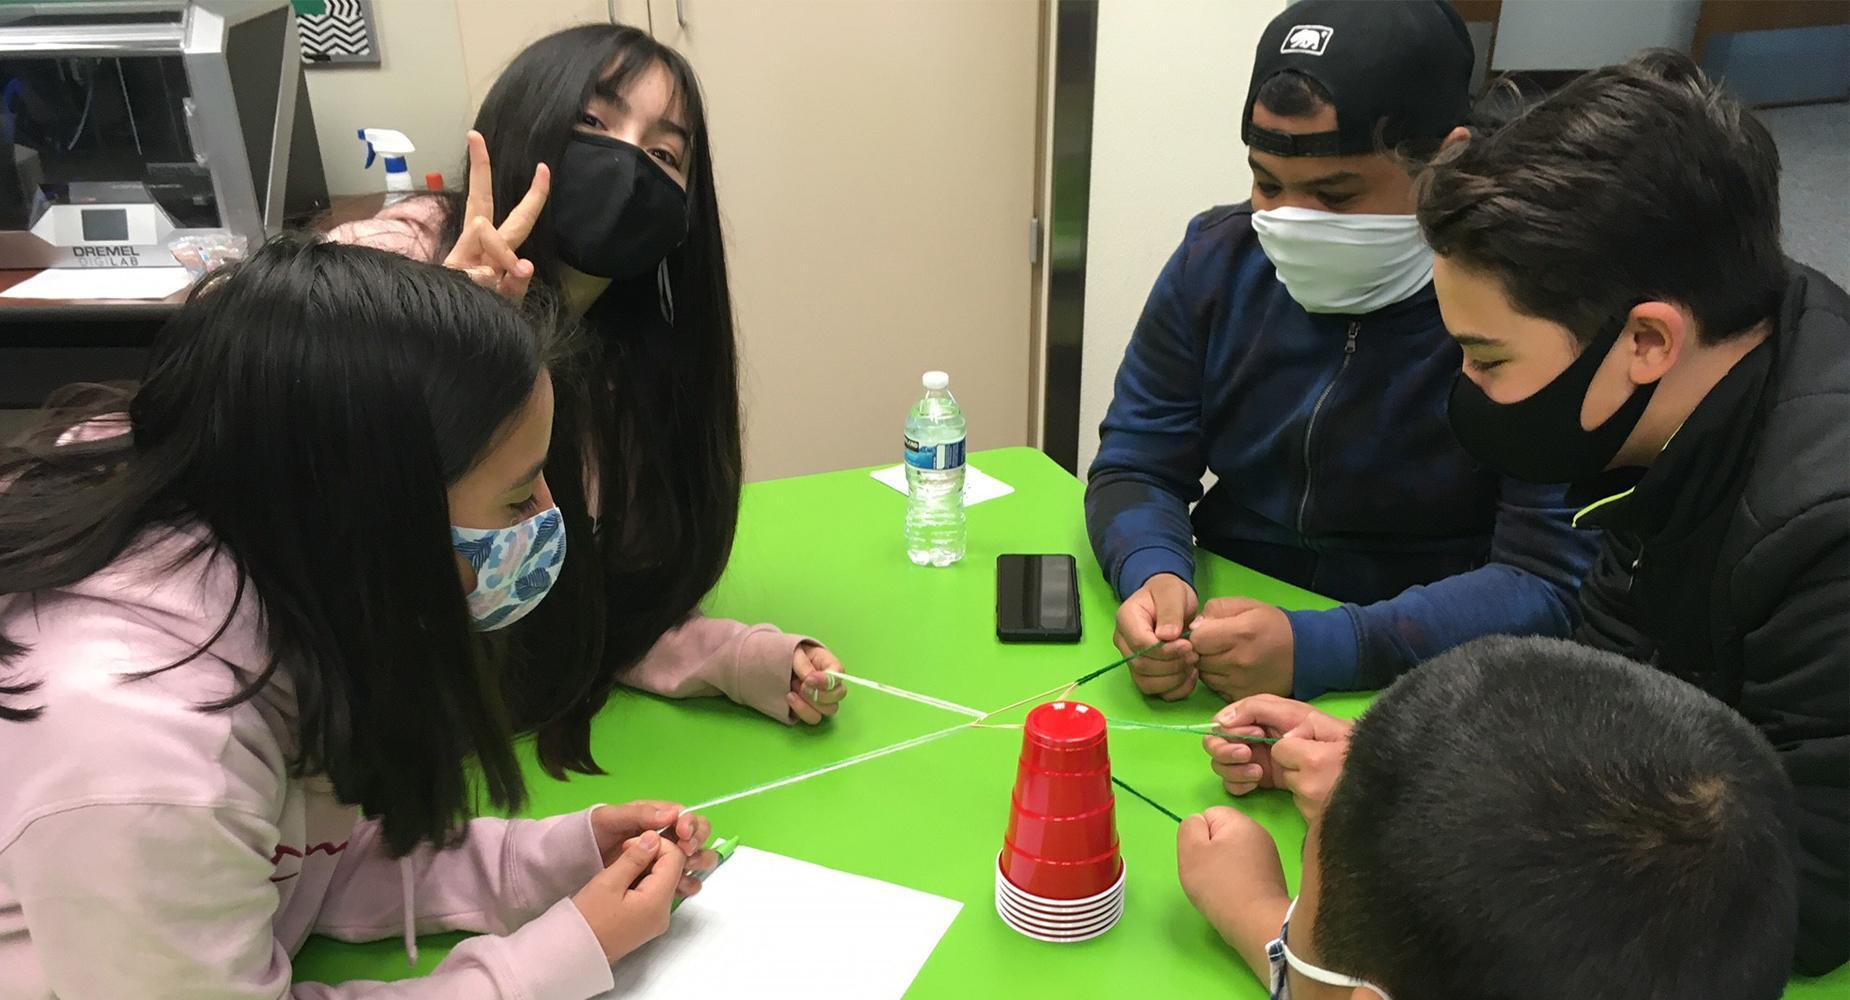 Five middle school students pull on interconnected strings in a team exercise.